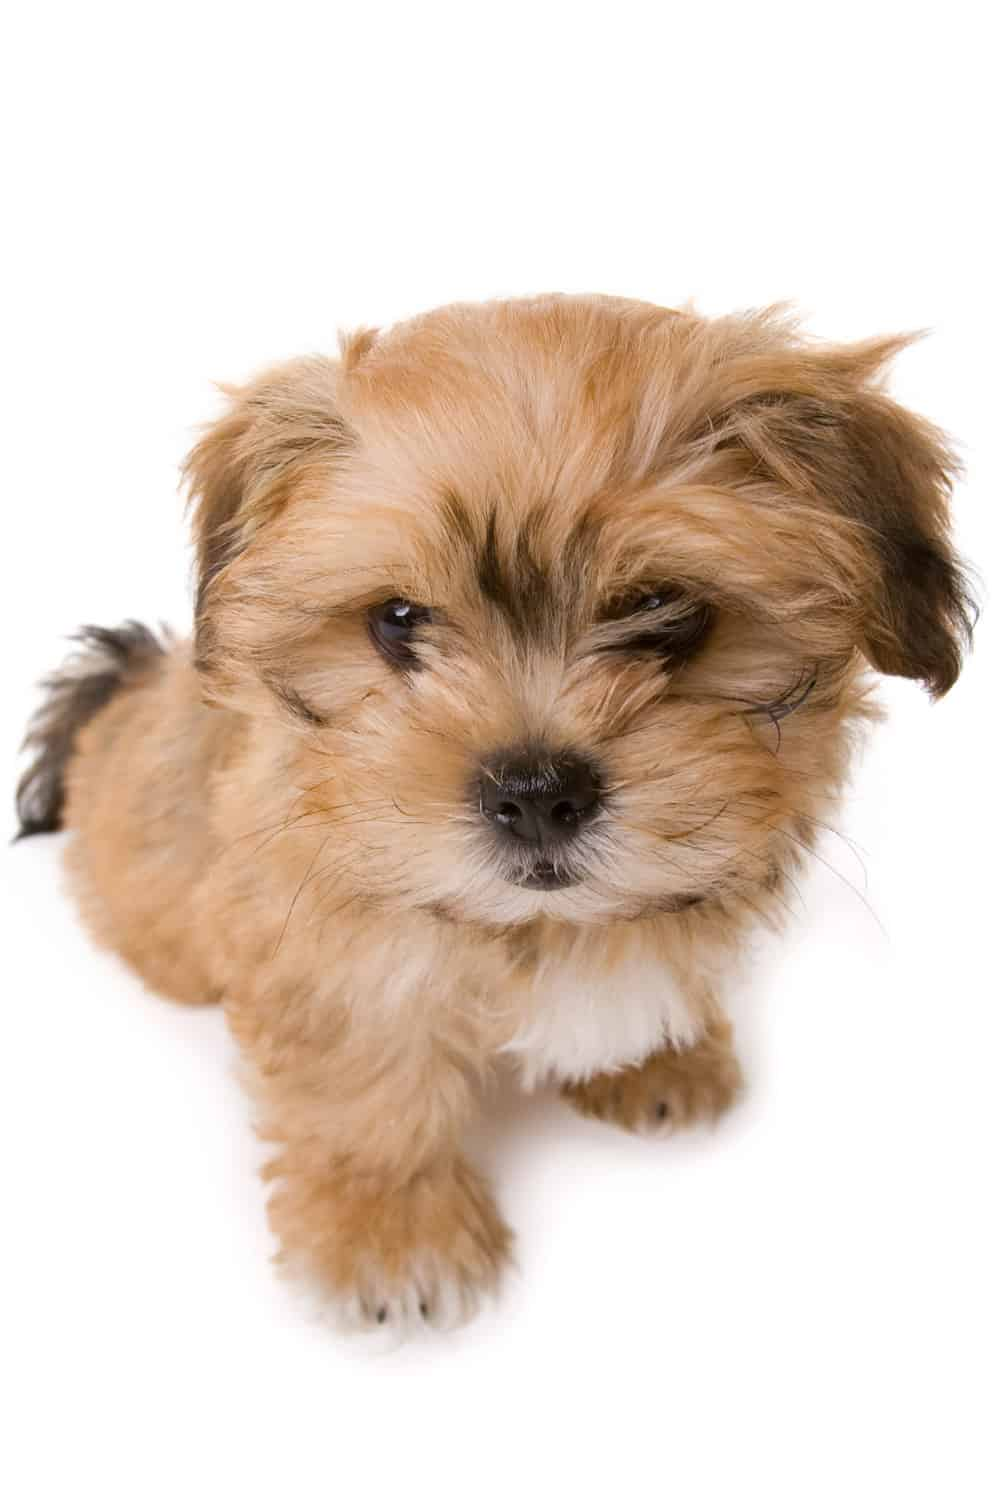 Shih Tzu Bichon Frise Puppies For Sale